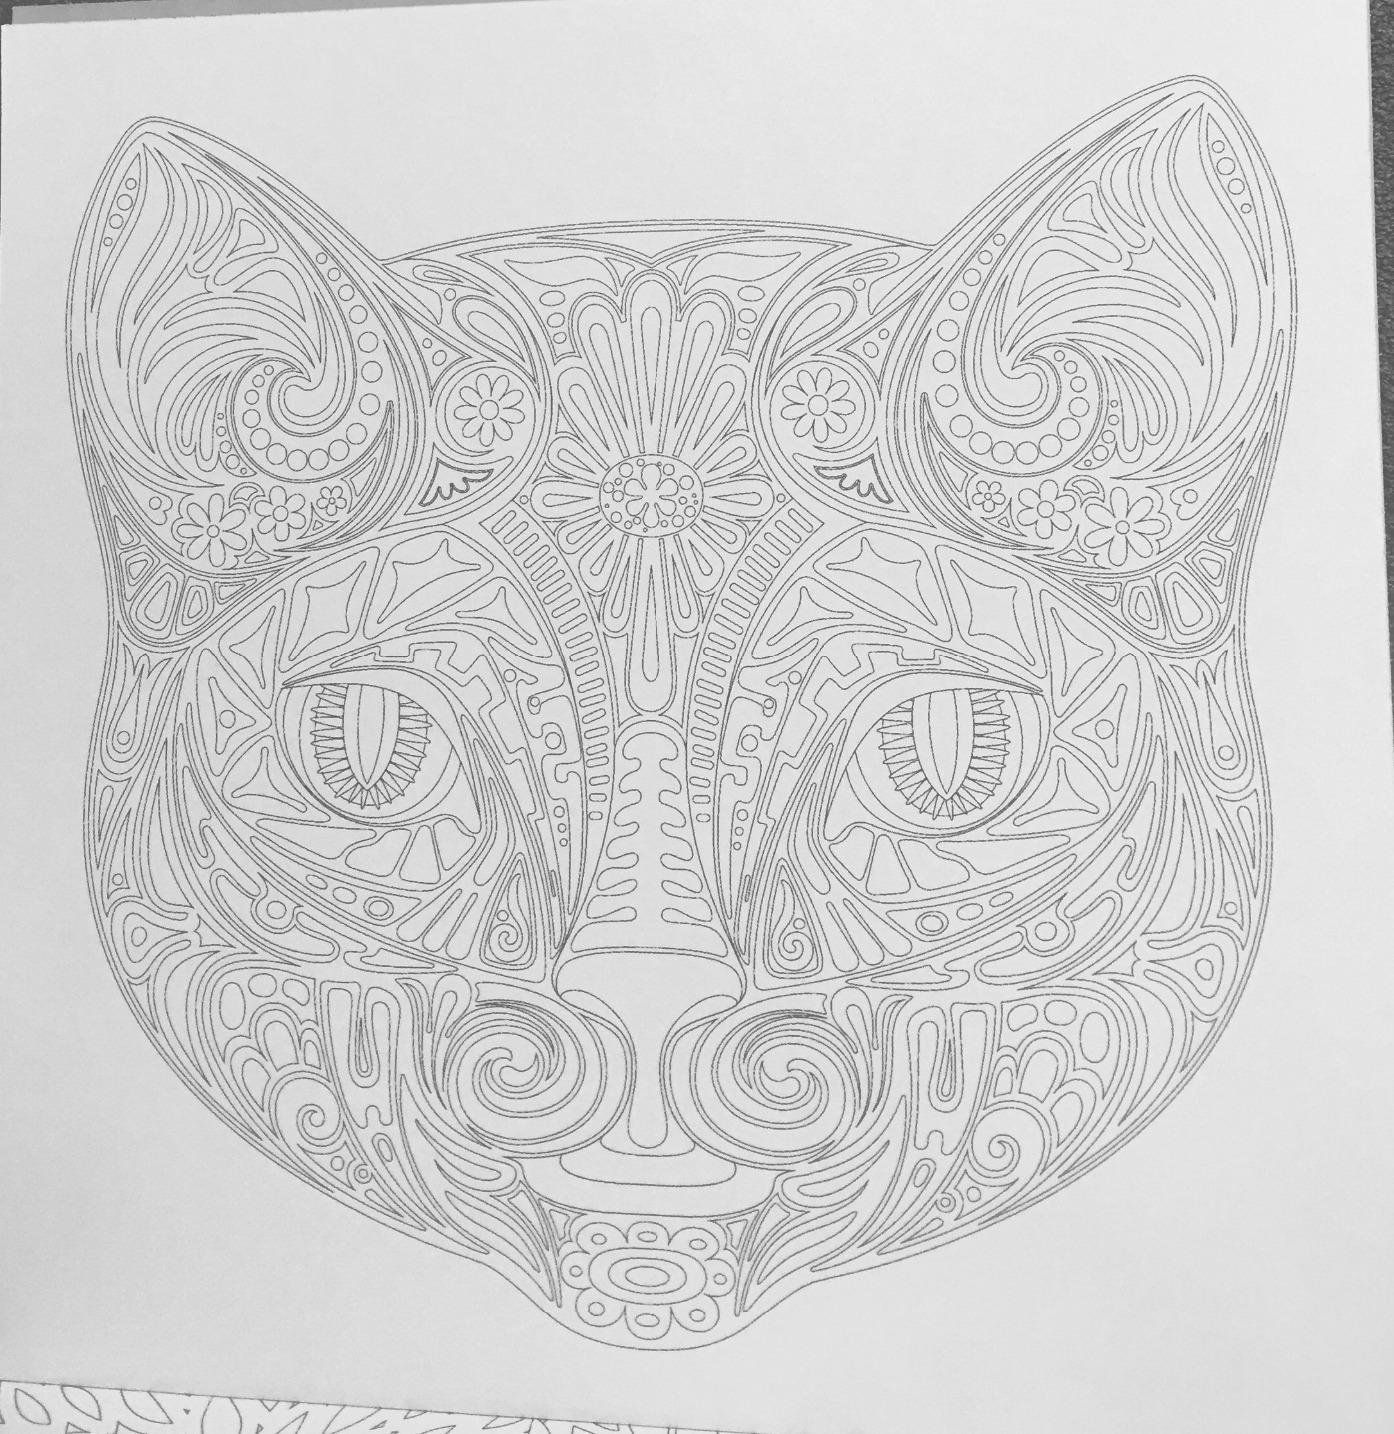 Amazon Cats 70 Designs To Help You De Stress Coloring